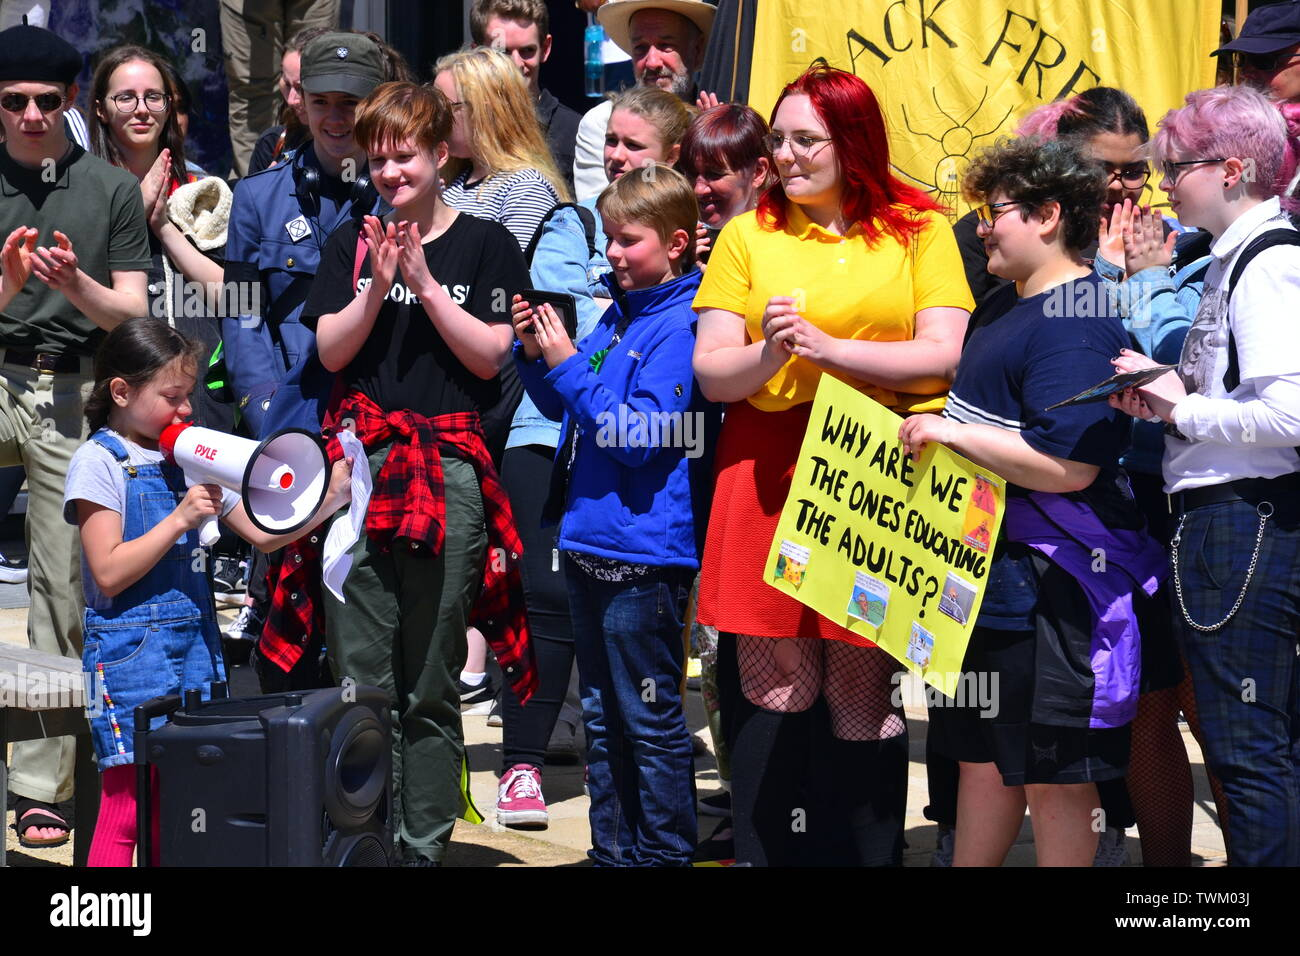 A young girl addresses young people lobbying for action to prevent climate change at the  Manchester Youth Strike 4 Climate protest on June 21, 2019, in Manchester, uk. The group marched from St Peter's Square in the city centre to the University of Manchester. One of their demands is for the University to divest itself of investments in fossil fuels. - Stock Image